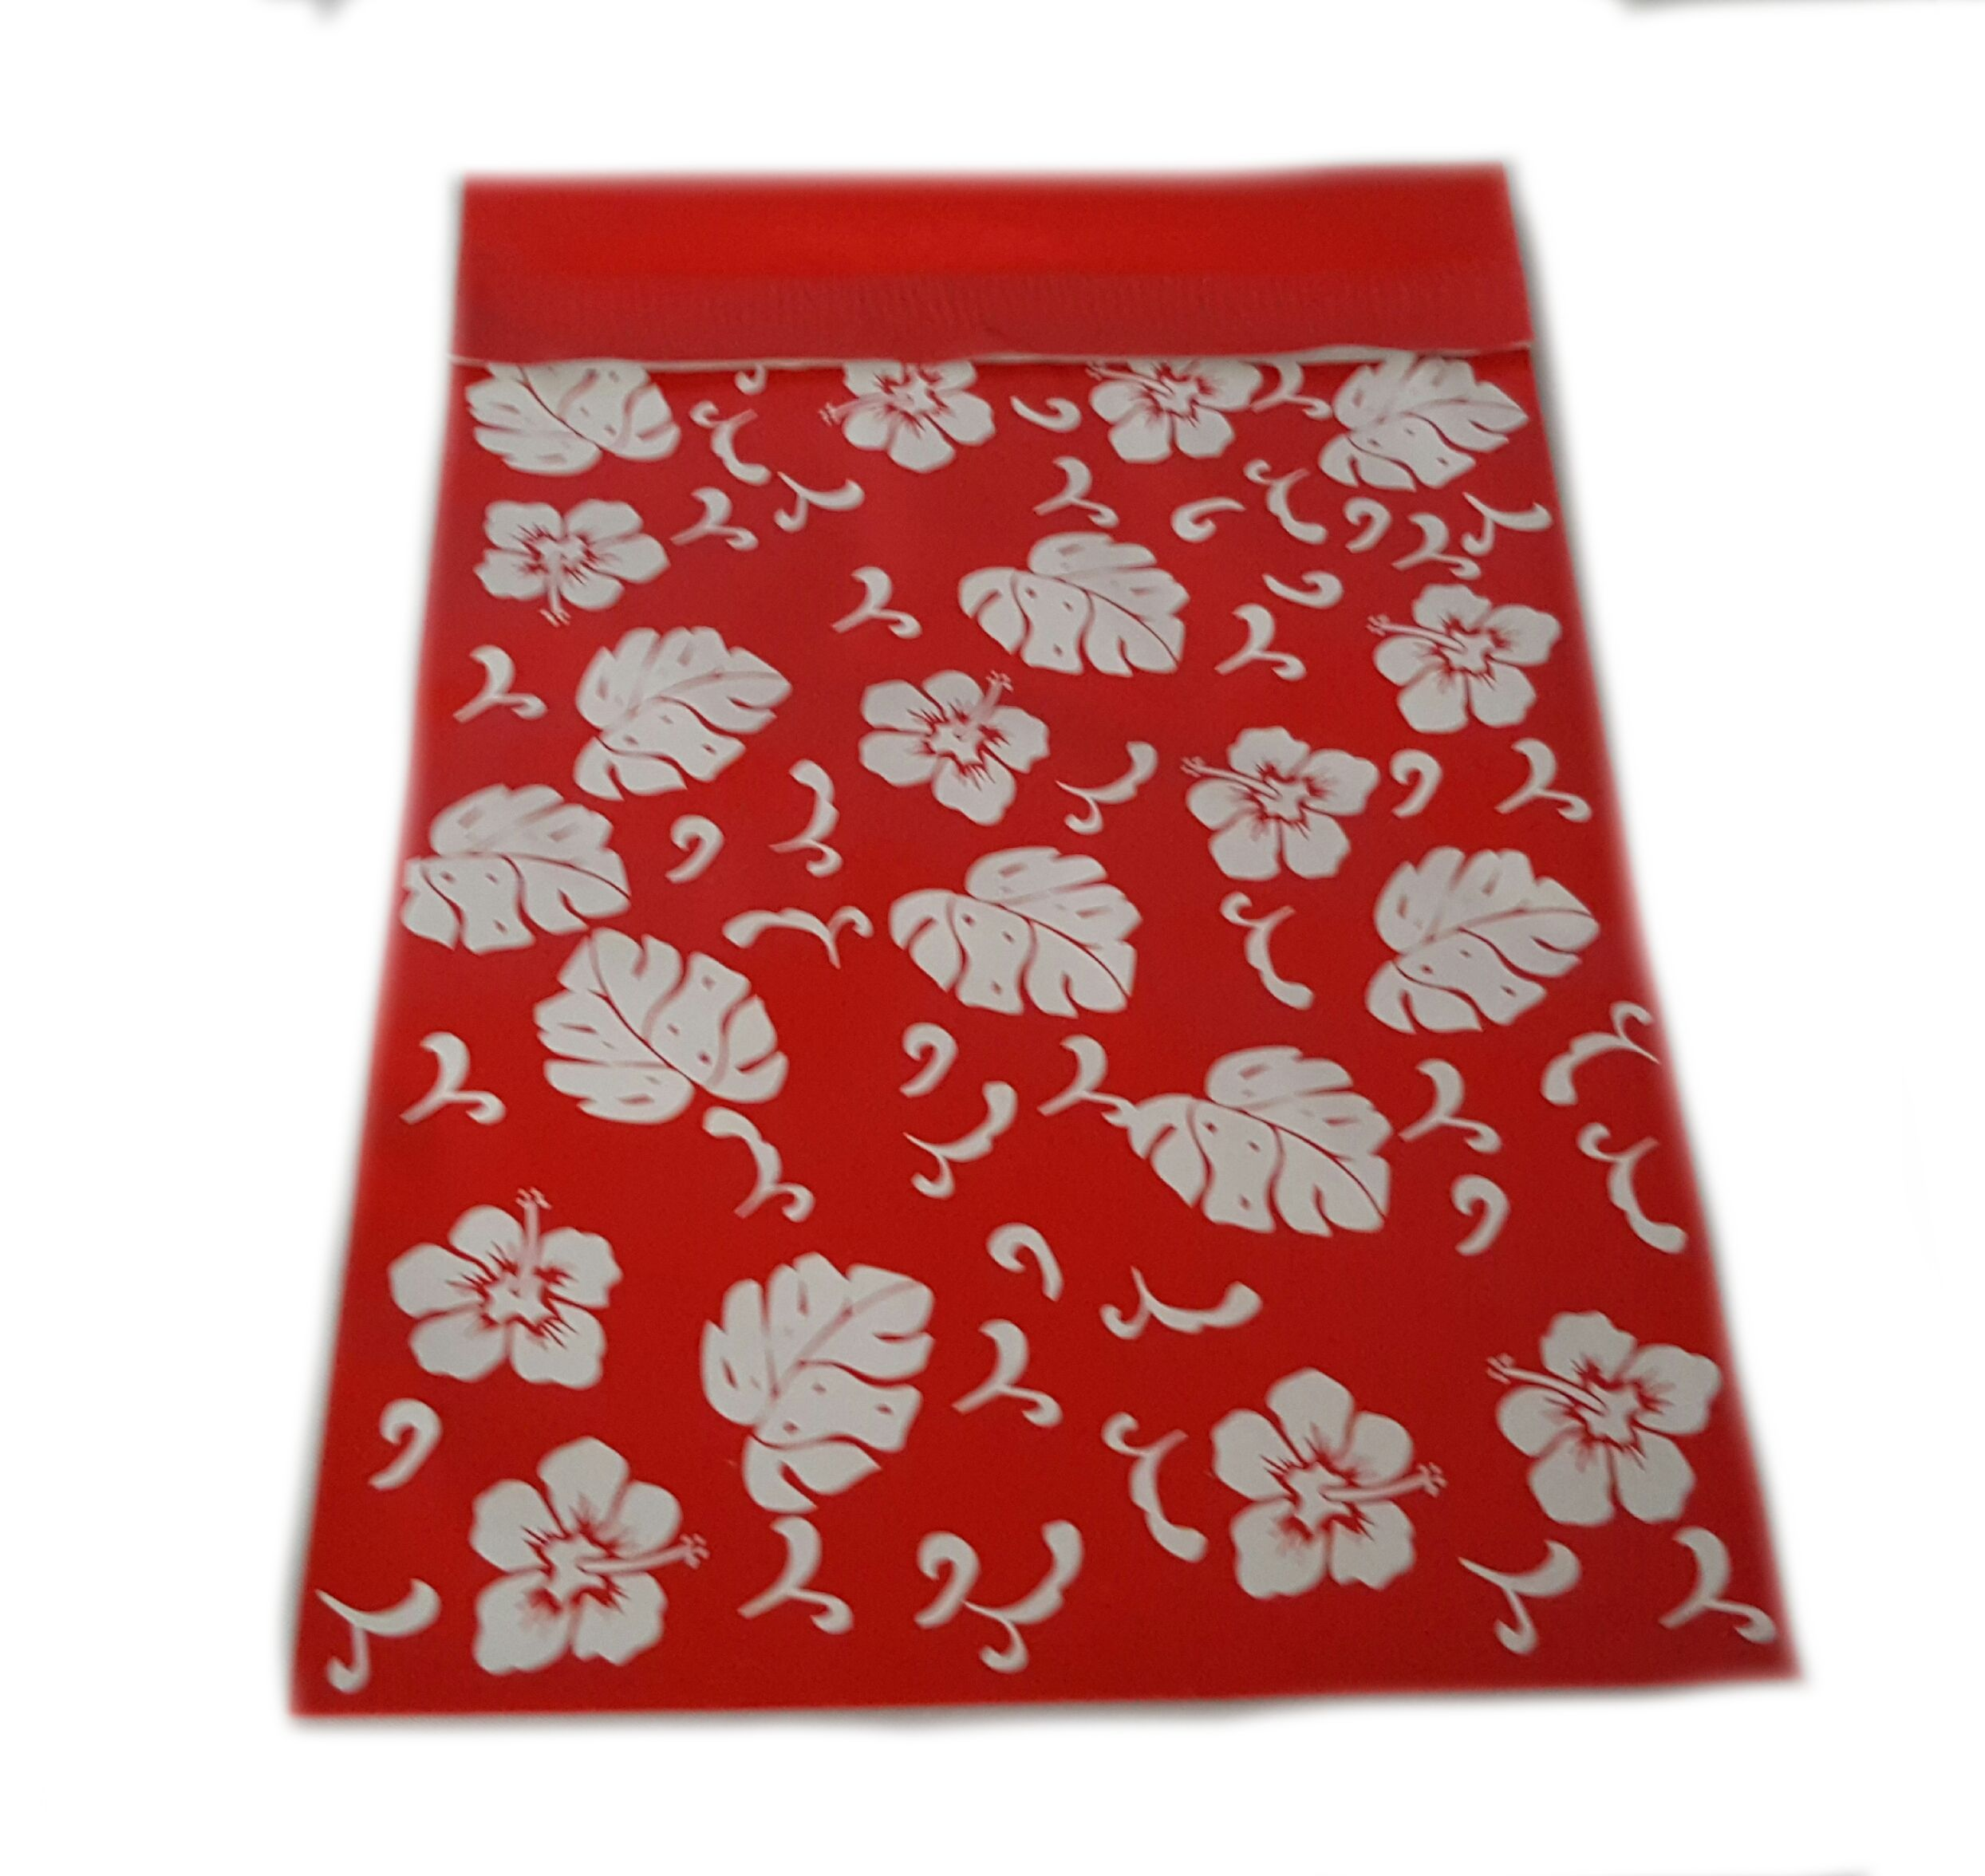 100 10x13 hawaii poly mailer plastic shipping mailing bag